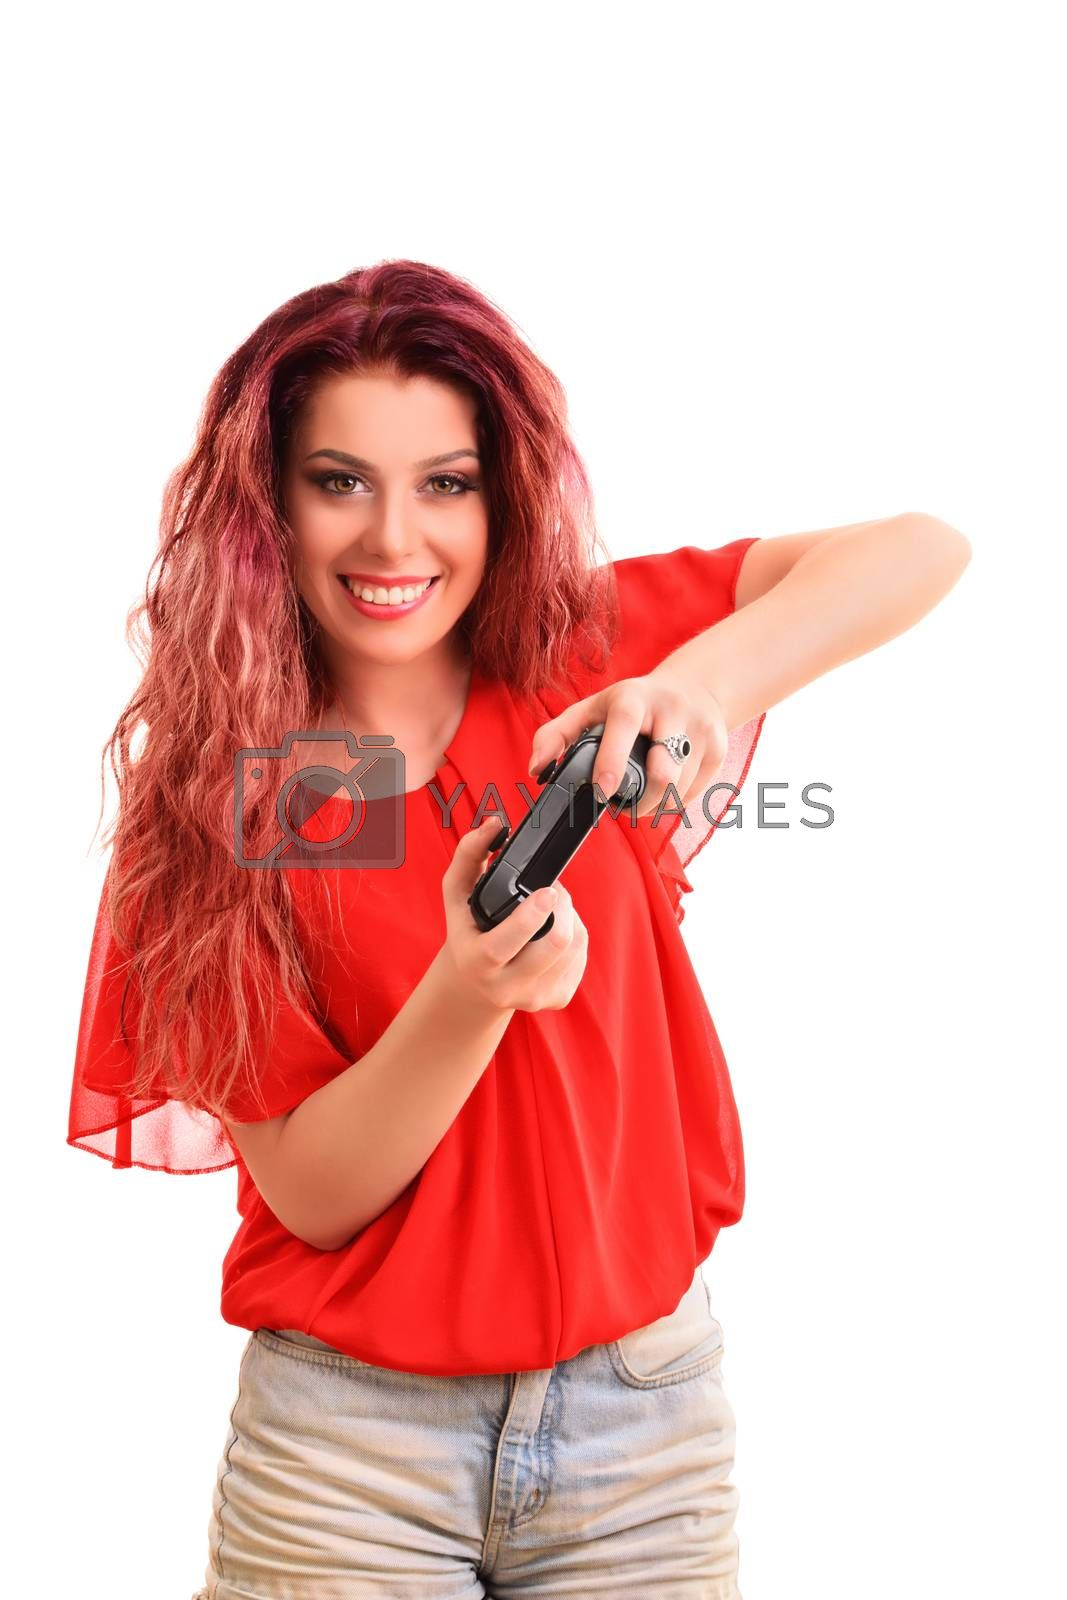 Portrait of a beautiful attractive young girl smiling, playing on a game controller, isolated on white background.